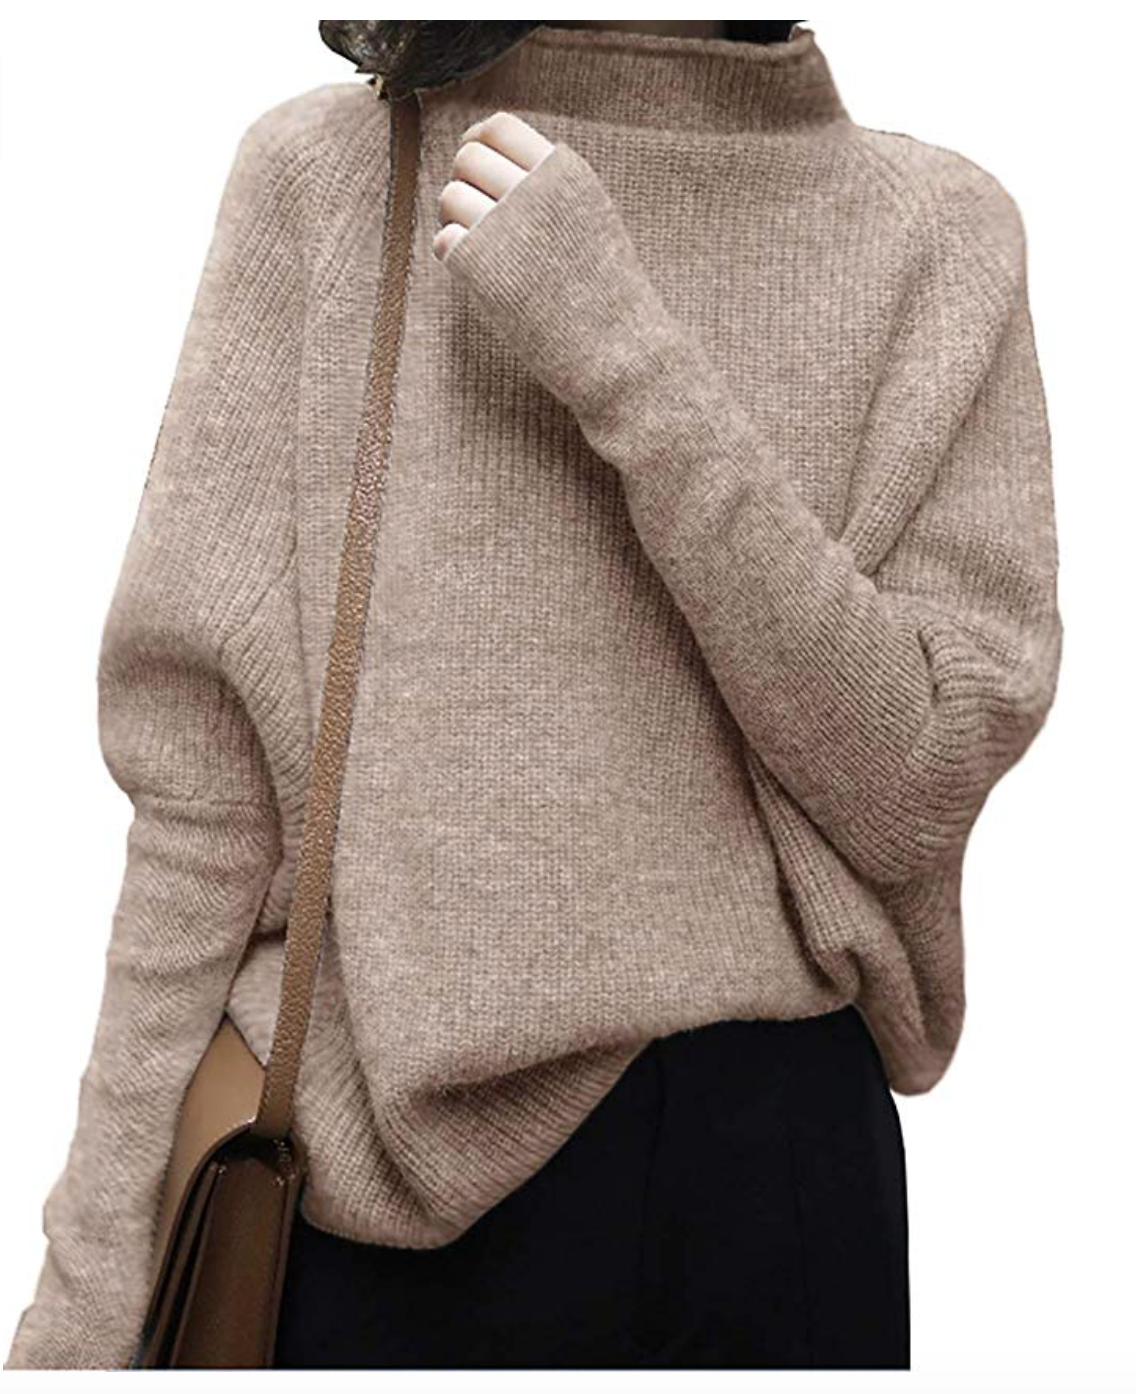 Oversized Chunky Winter Wool Half Turtleneck Batwing Sleeve Knitted Pullover Sweater